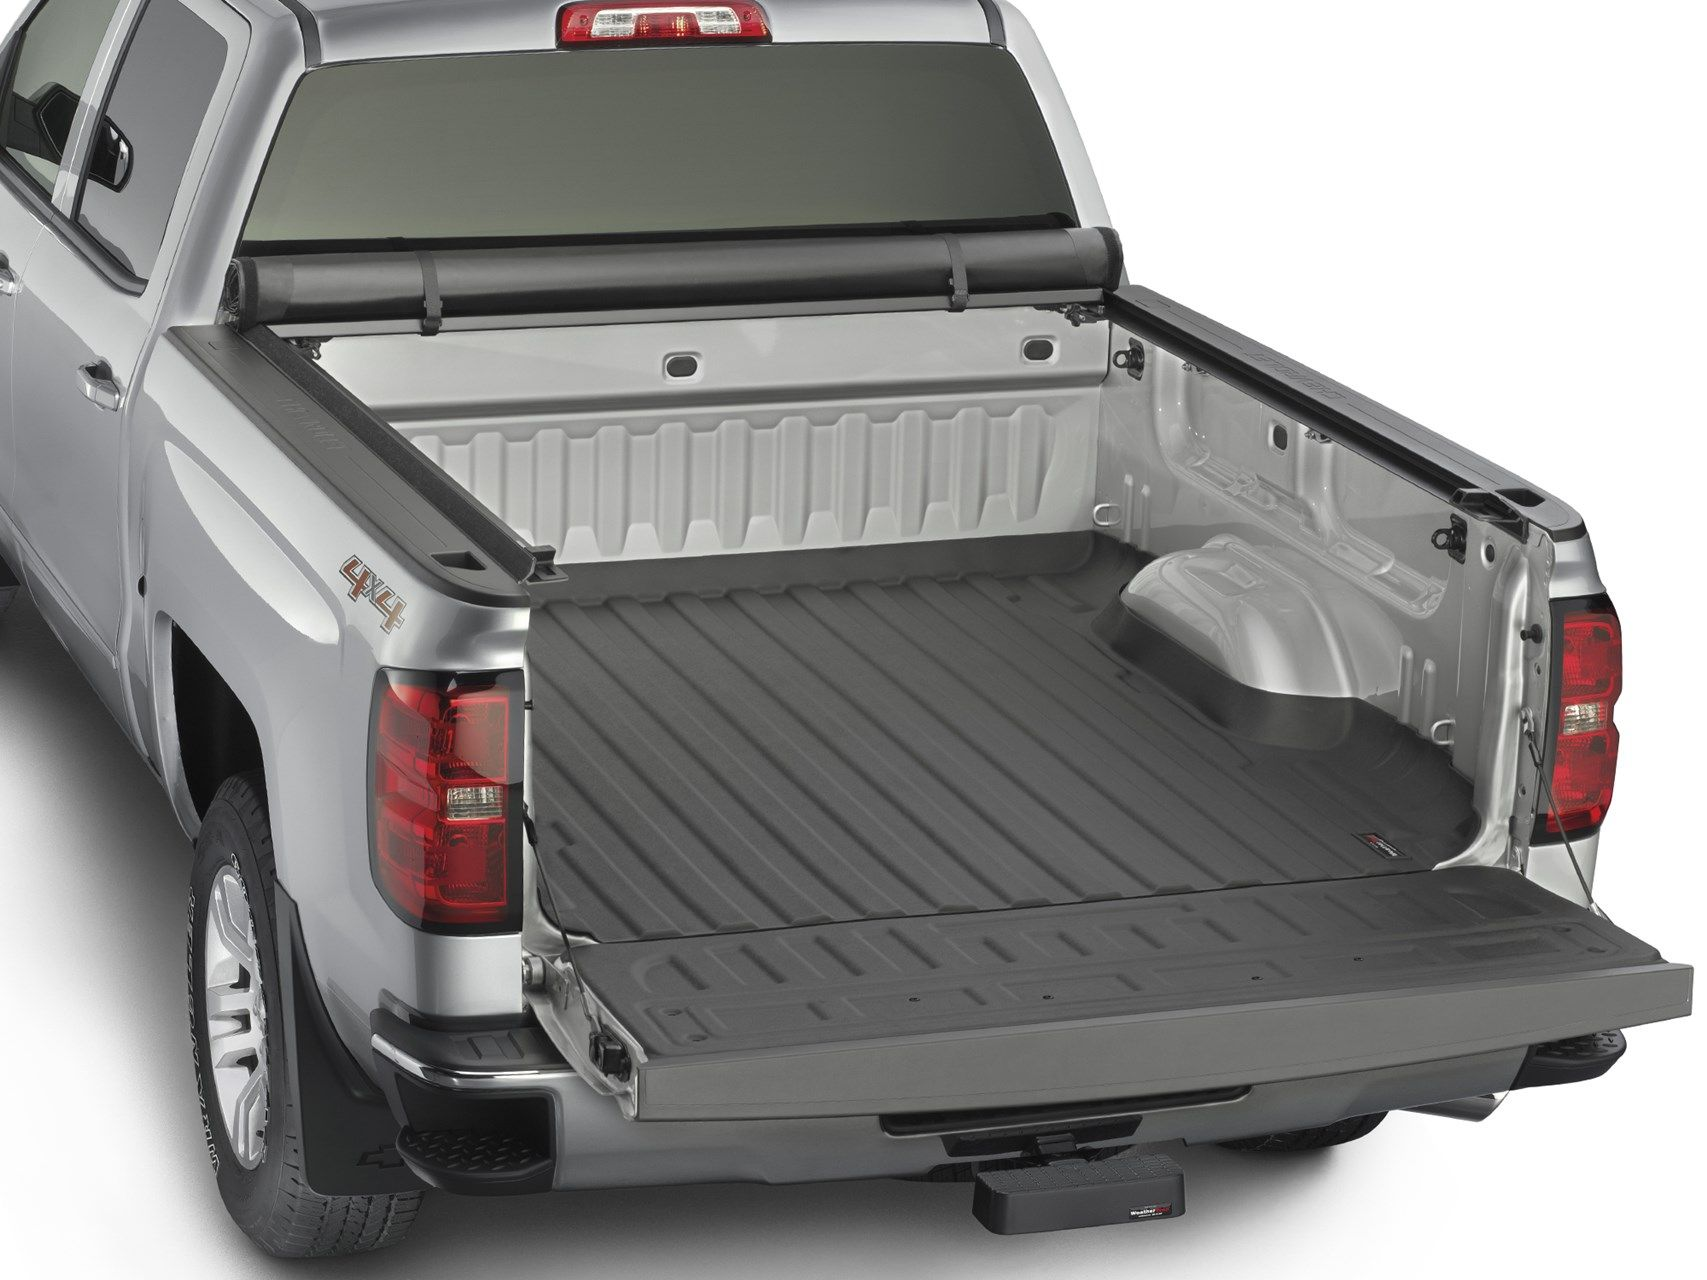 WeatherTech.com | Truck bed covers, Truck bed, Pickup bed covers